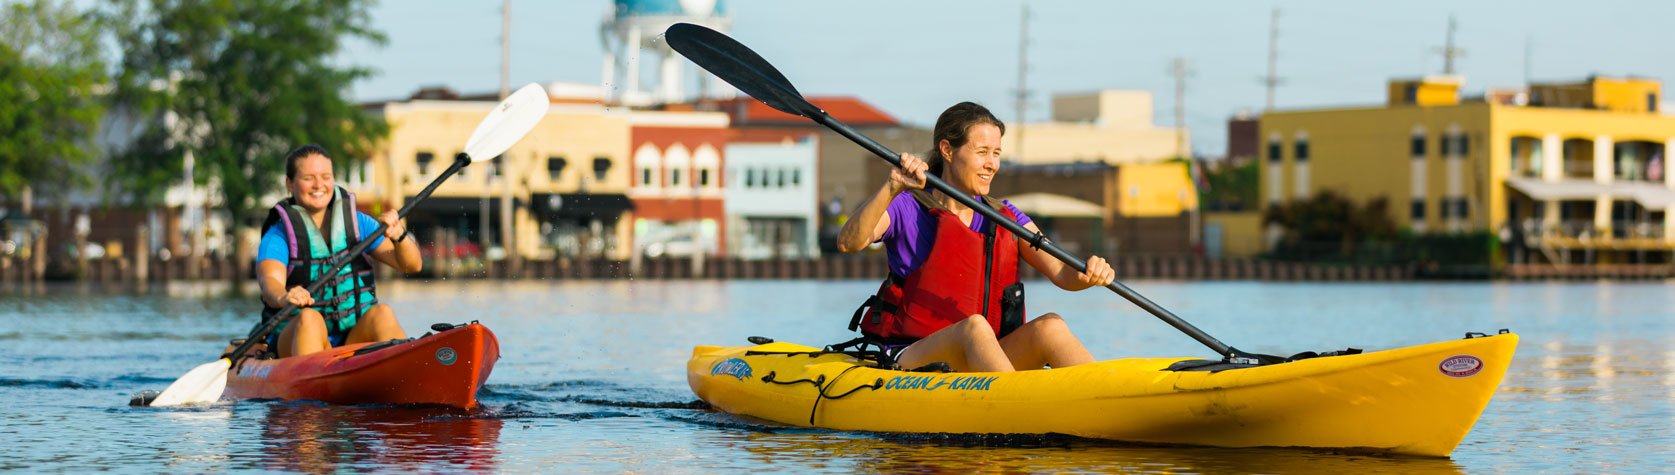 women kayaking on downtown waterfront river with buildings in background